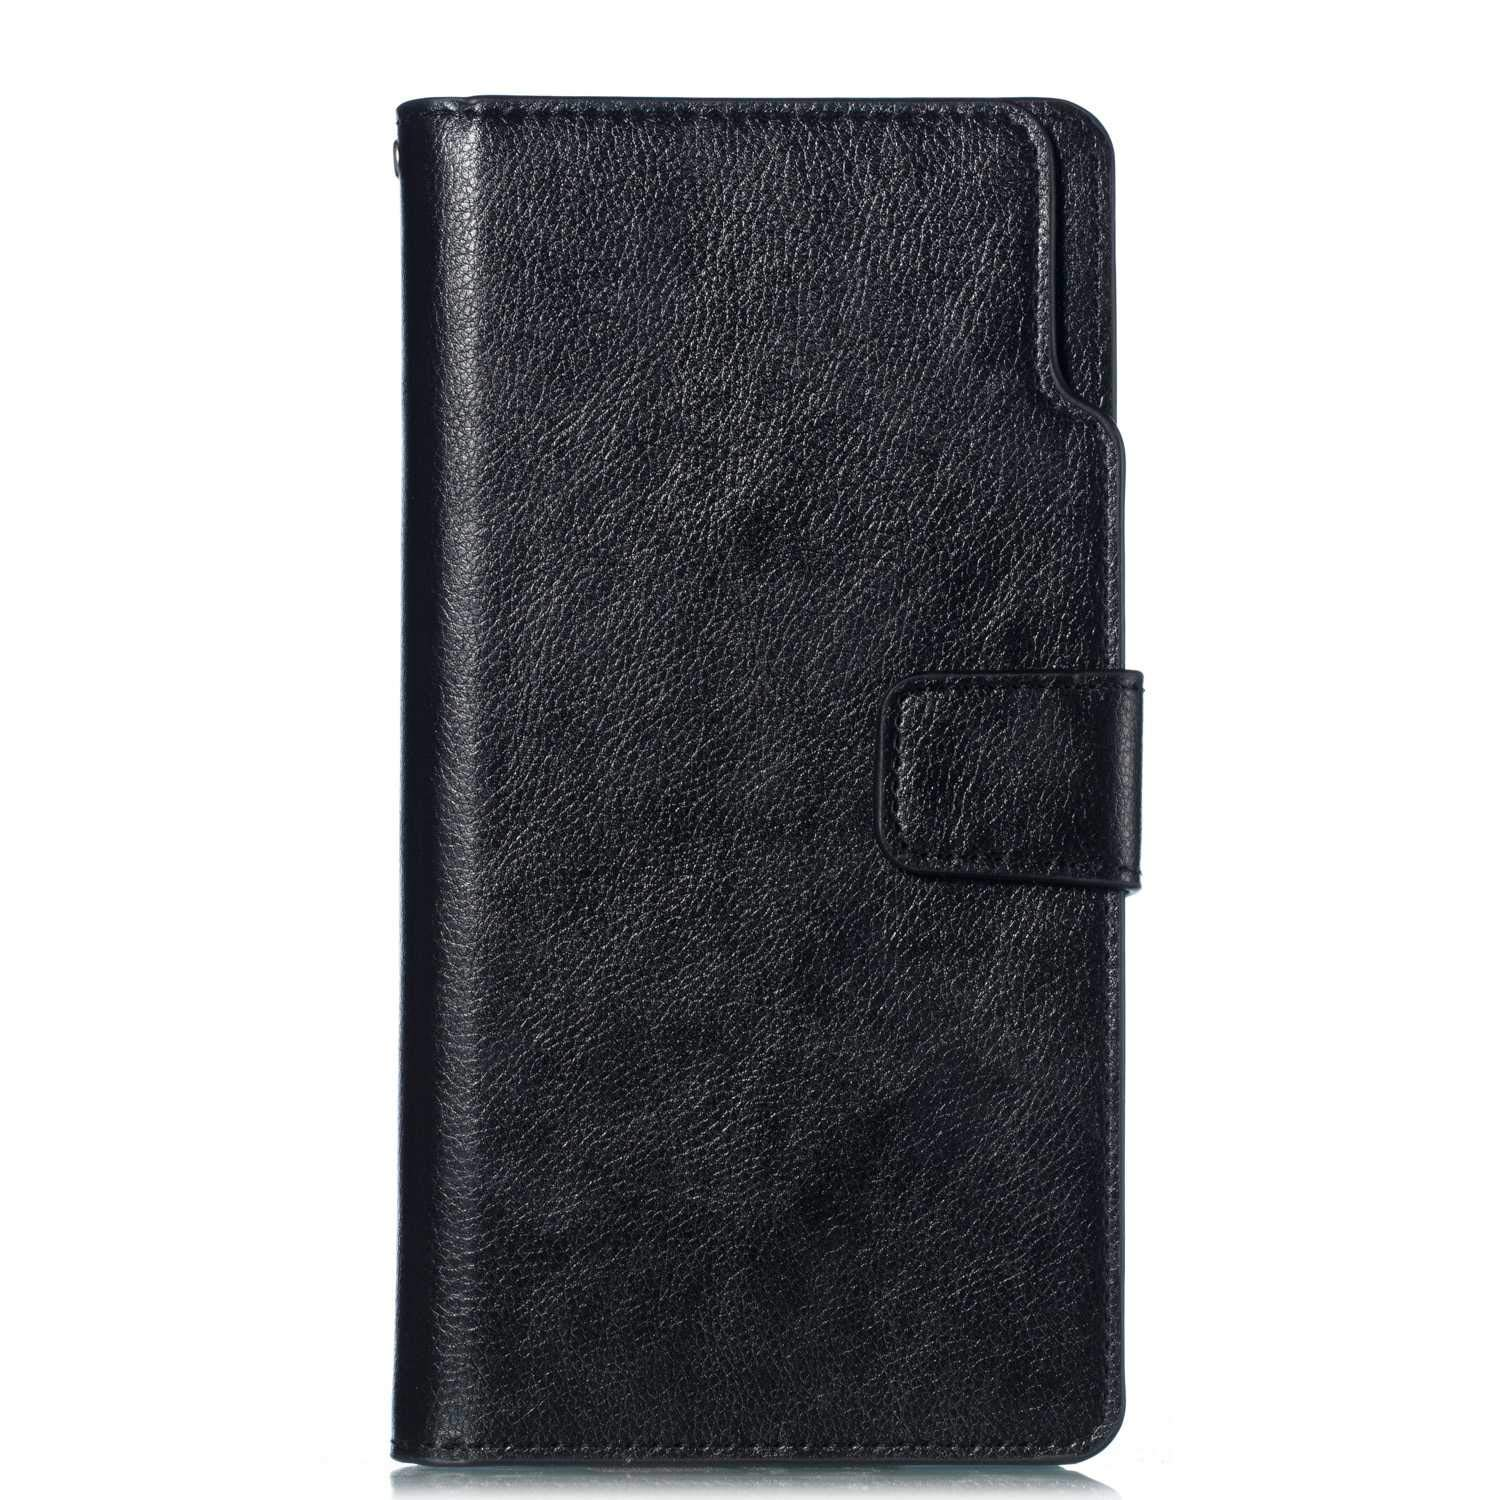 UNEXTATI Galaxy Note 8 Wallet Case, Leather Folding Flip Case with 9 Card Holder, Classic Design Protective Cover Bumper Case for Samsung Galaxy Note 8 (Black #3)